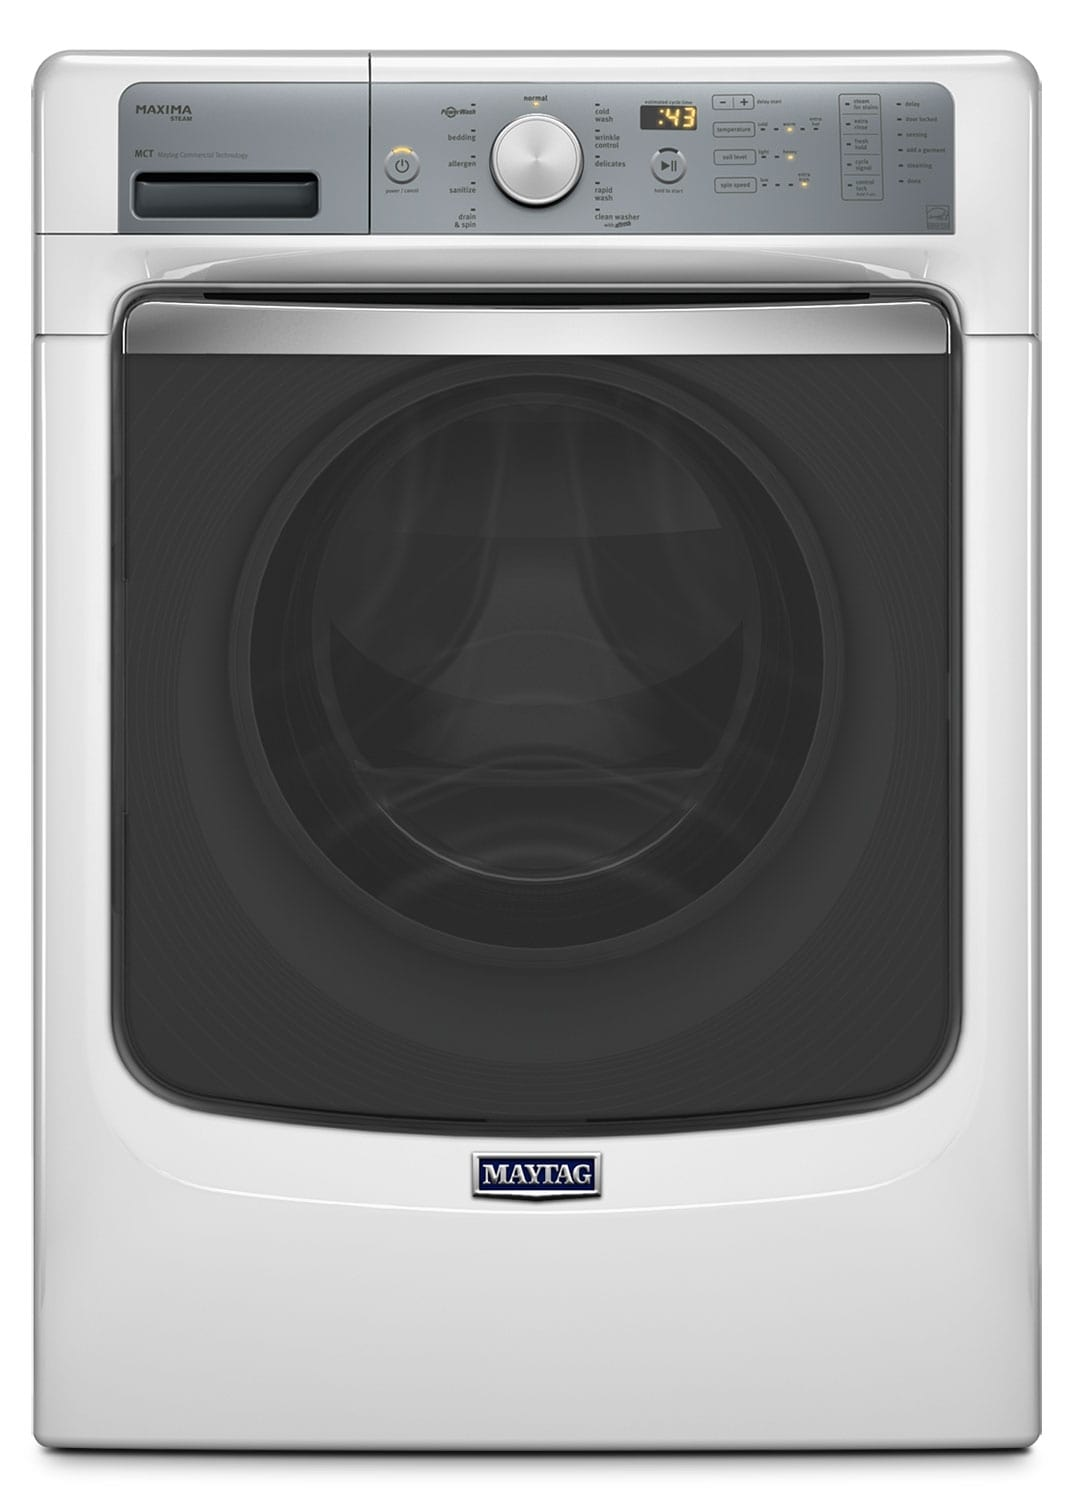 Washers and Dryers - Maytag White Front-Load Washer (5.2 Cu. Ft.) - MHW7100DW